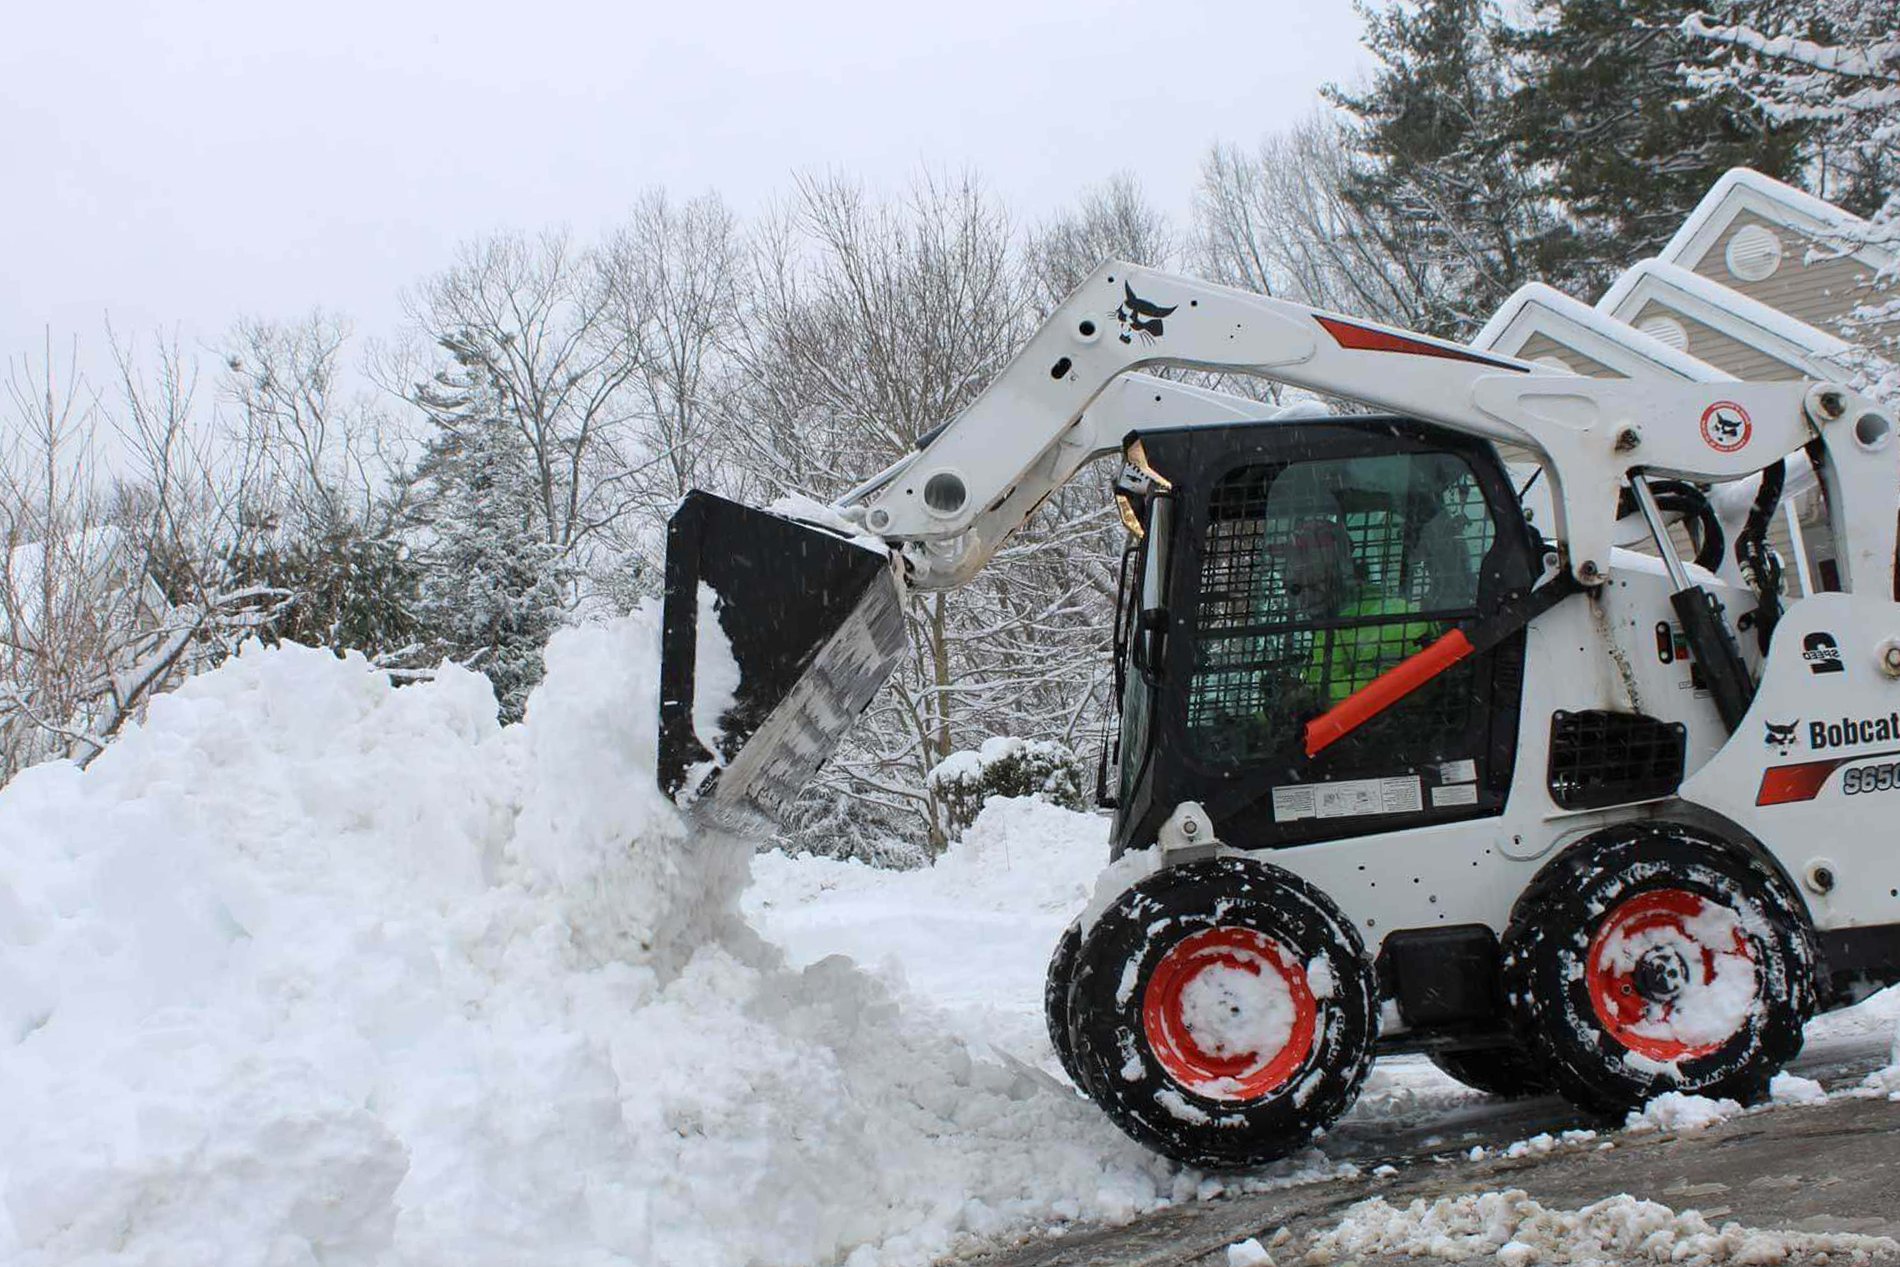 Commercial and Residential Snow Plowing Removal and Blowing Services for Driveway and sidewalks in Flagstaff AZ